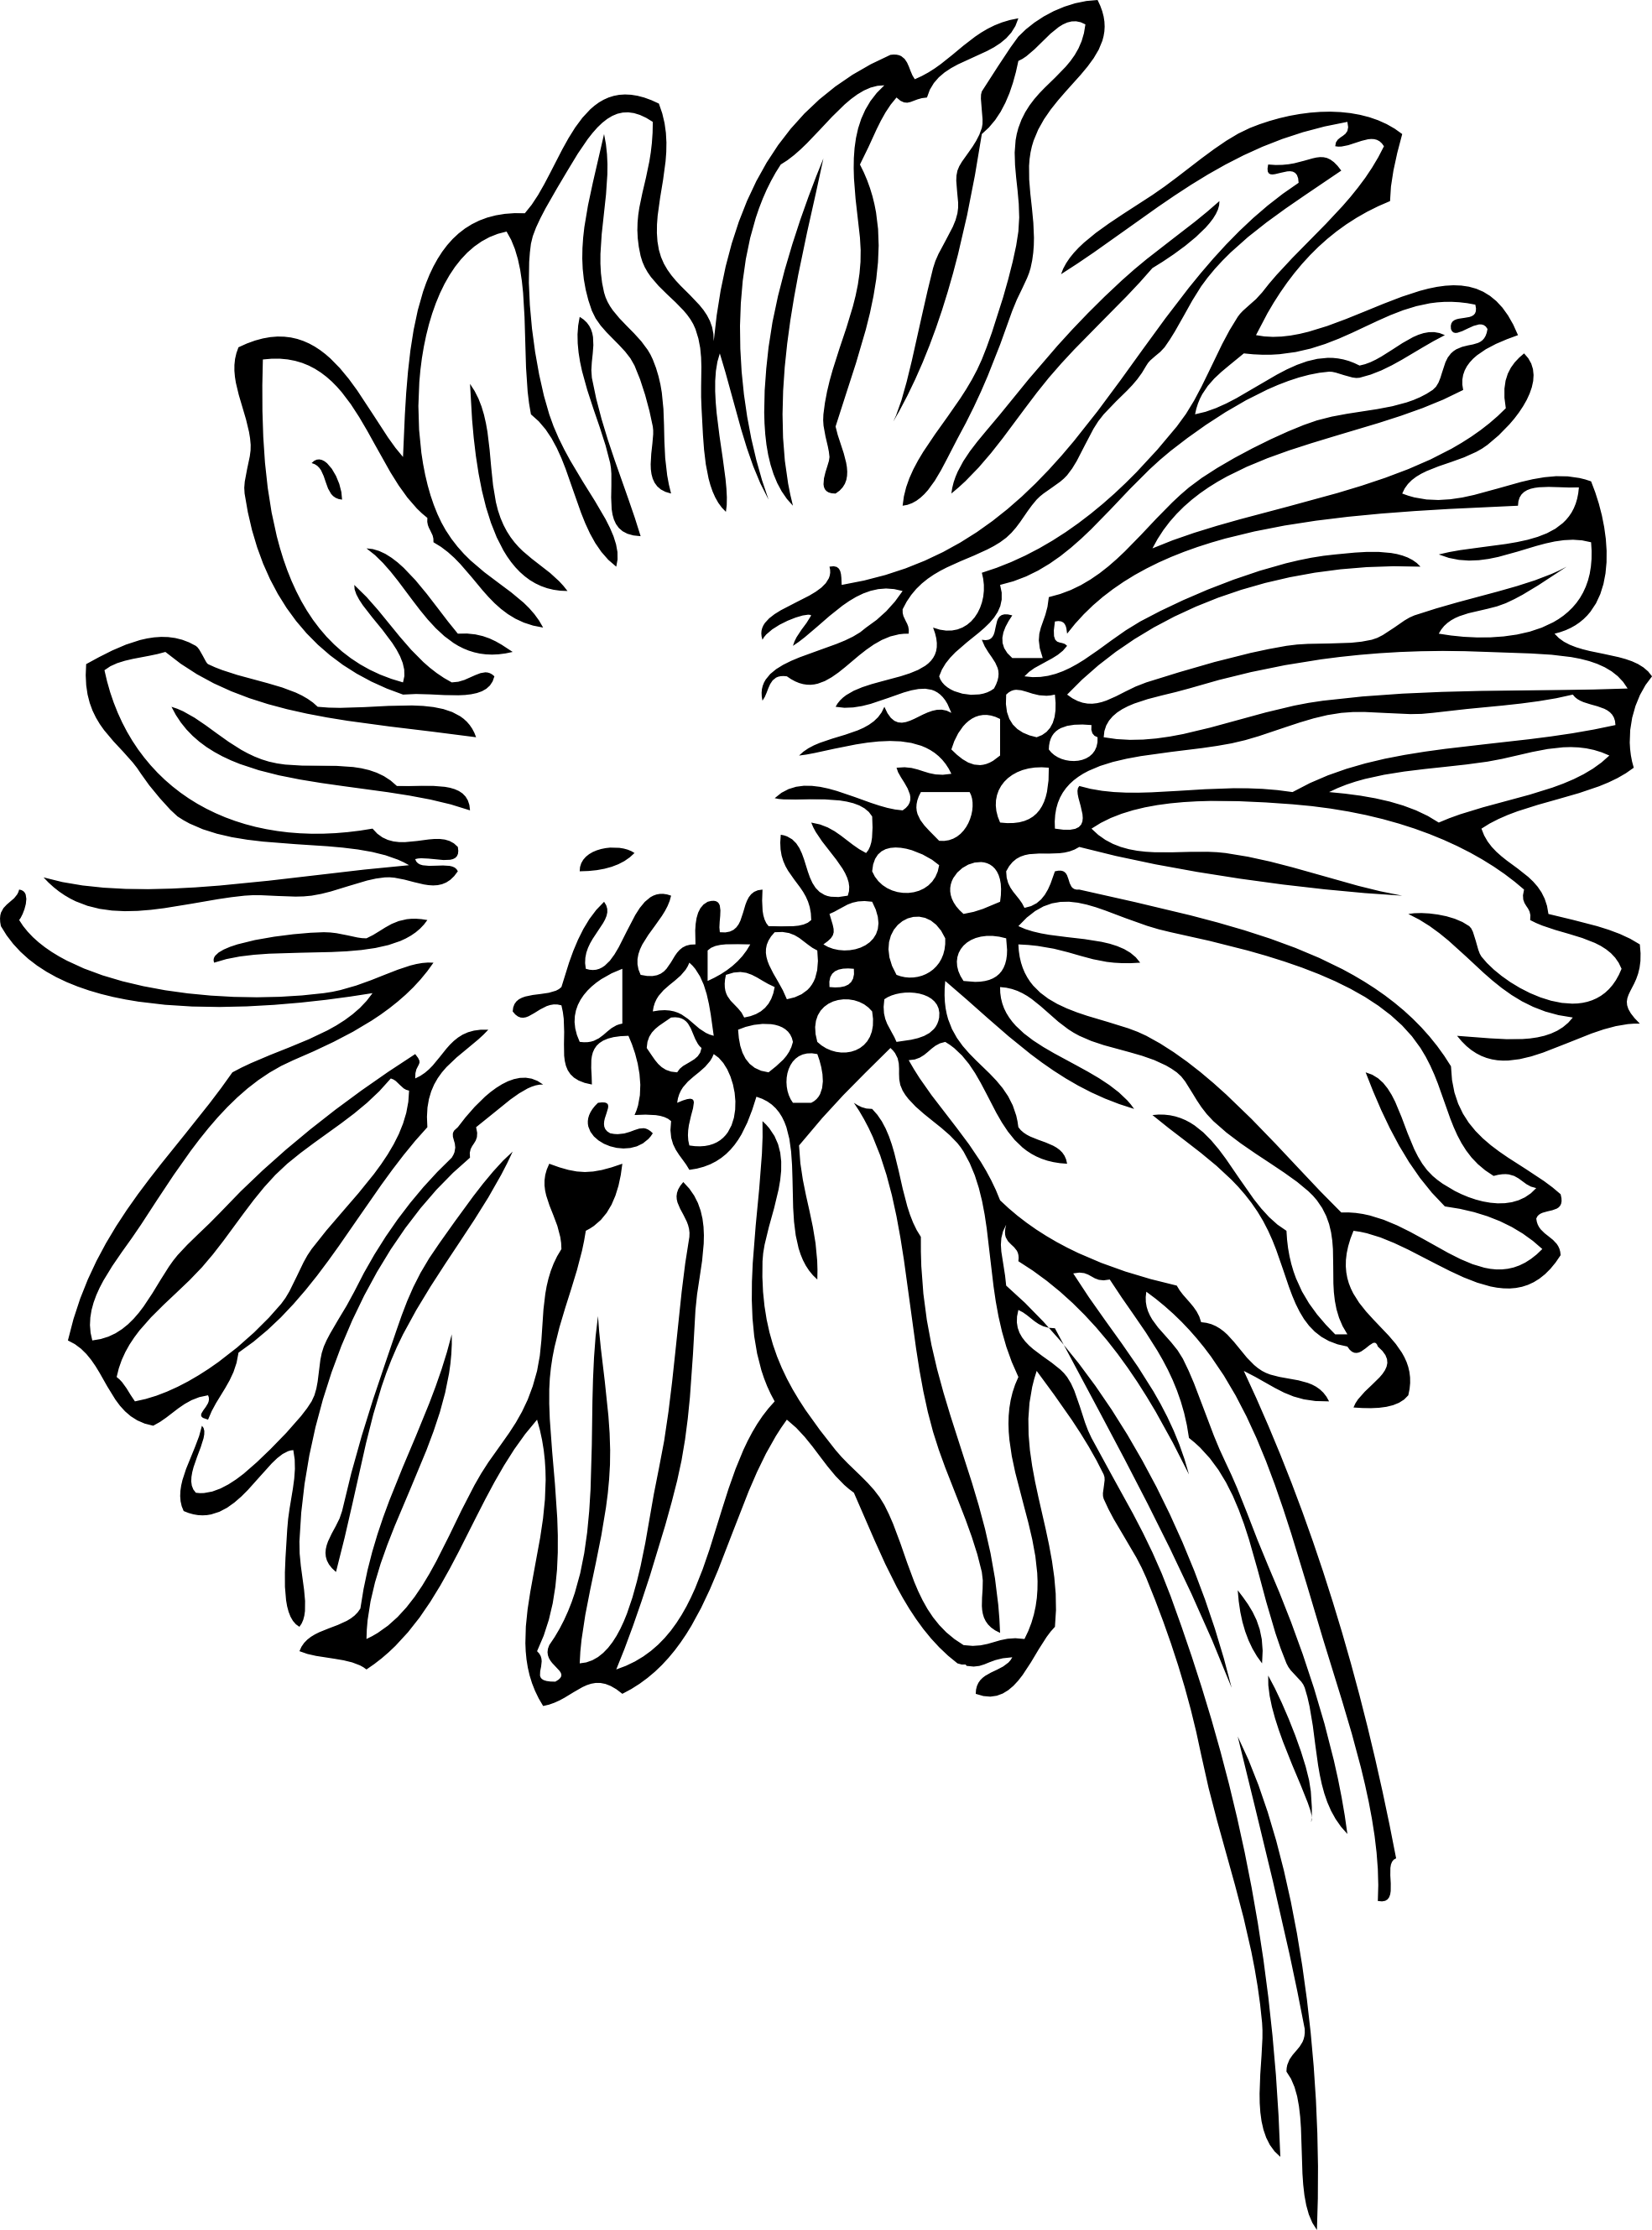 png free download Daisy Drawing Tumblr at GetDrawings